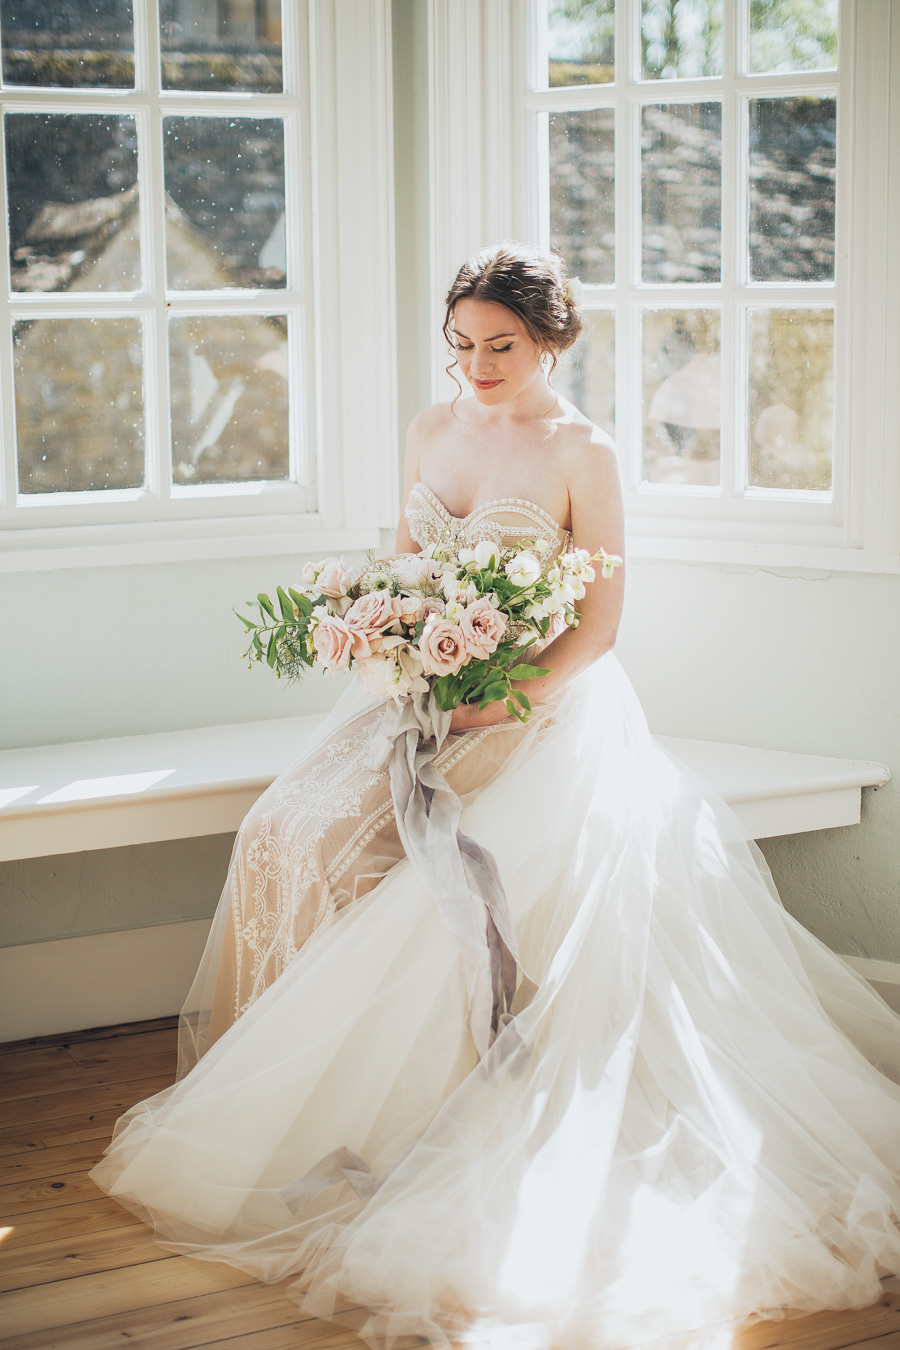 Intimate wedding for two Cornwell English Countryside